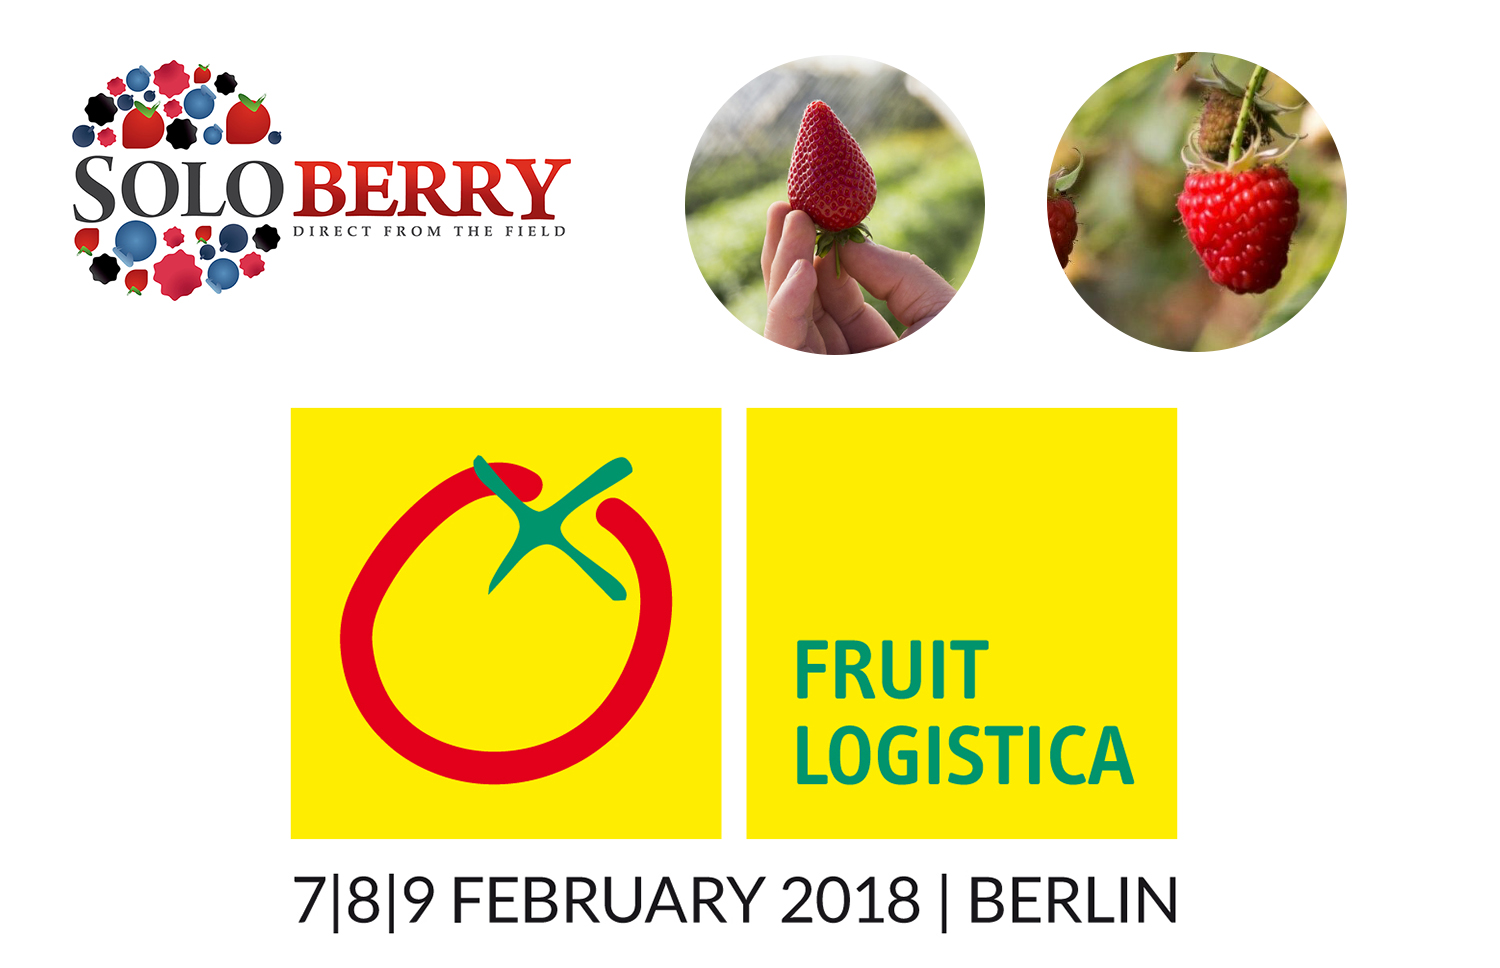 Soloberry Ltd are pleased to announce that we will be exhibiting at the prestigious fresh produce trade show, Fruit Logistica 2018